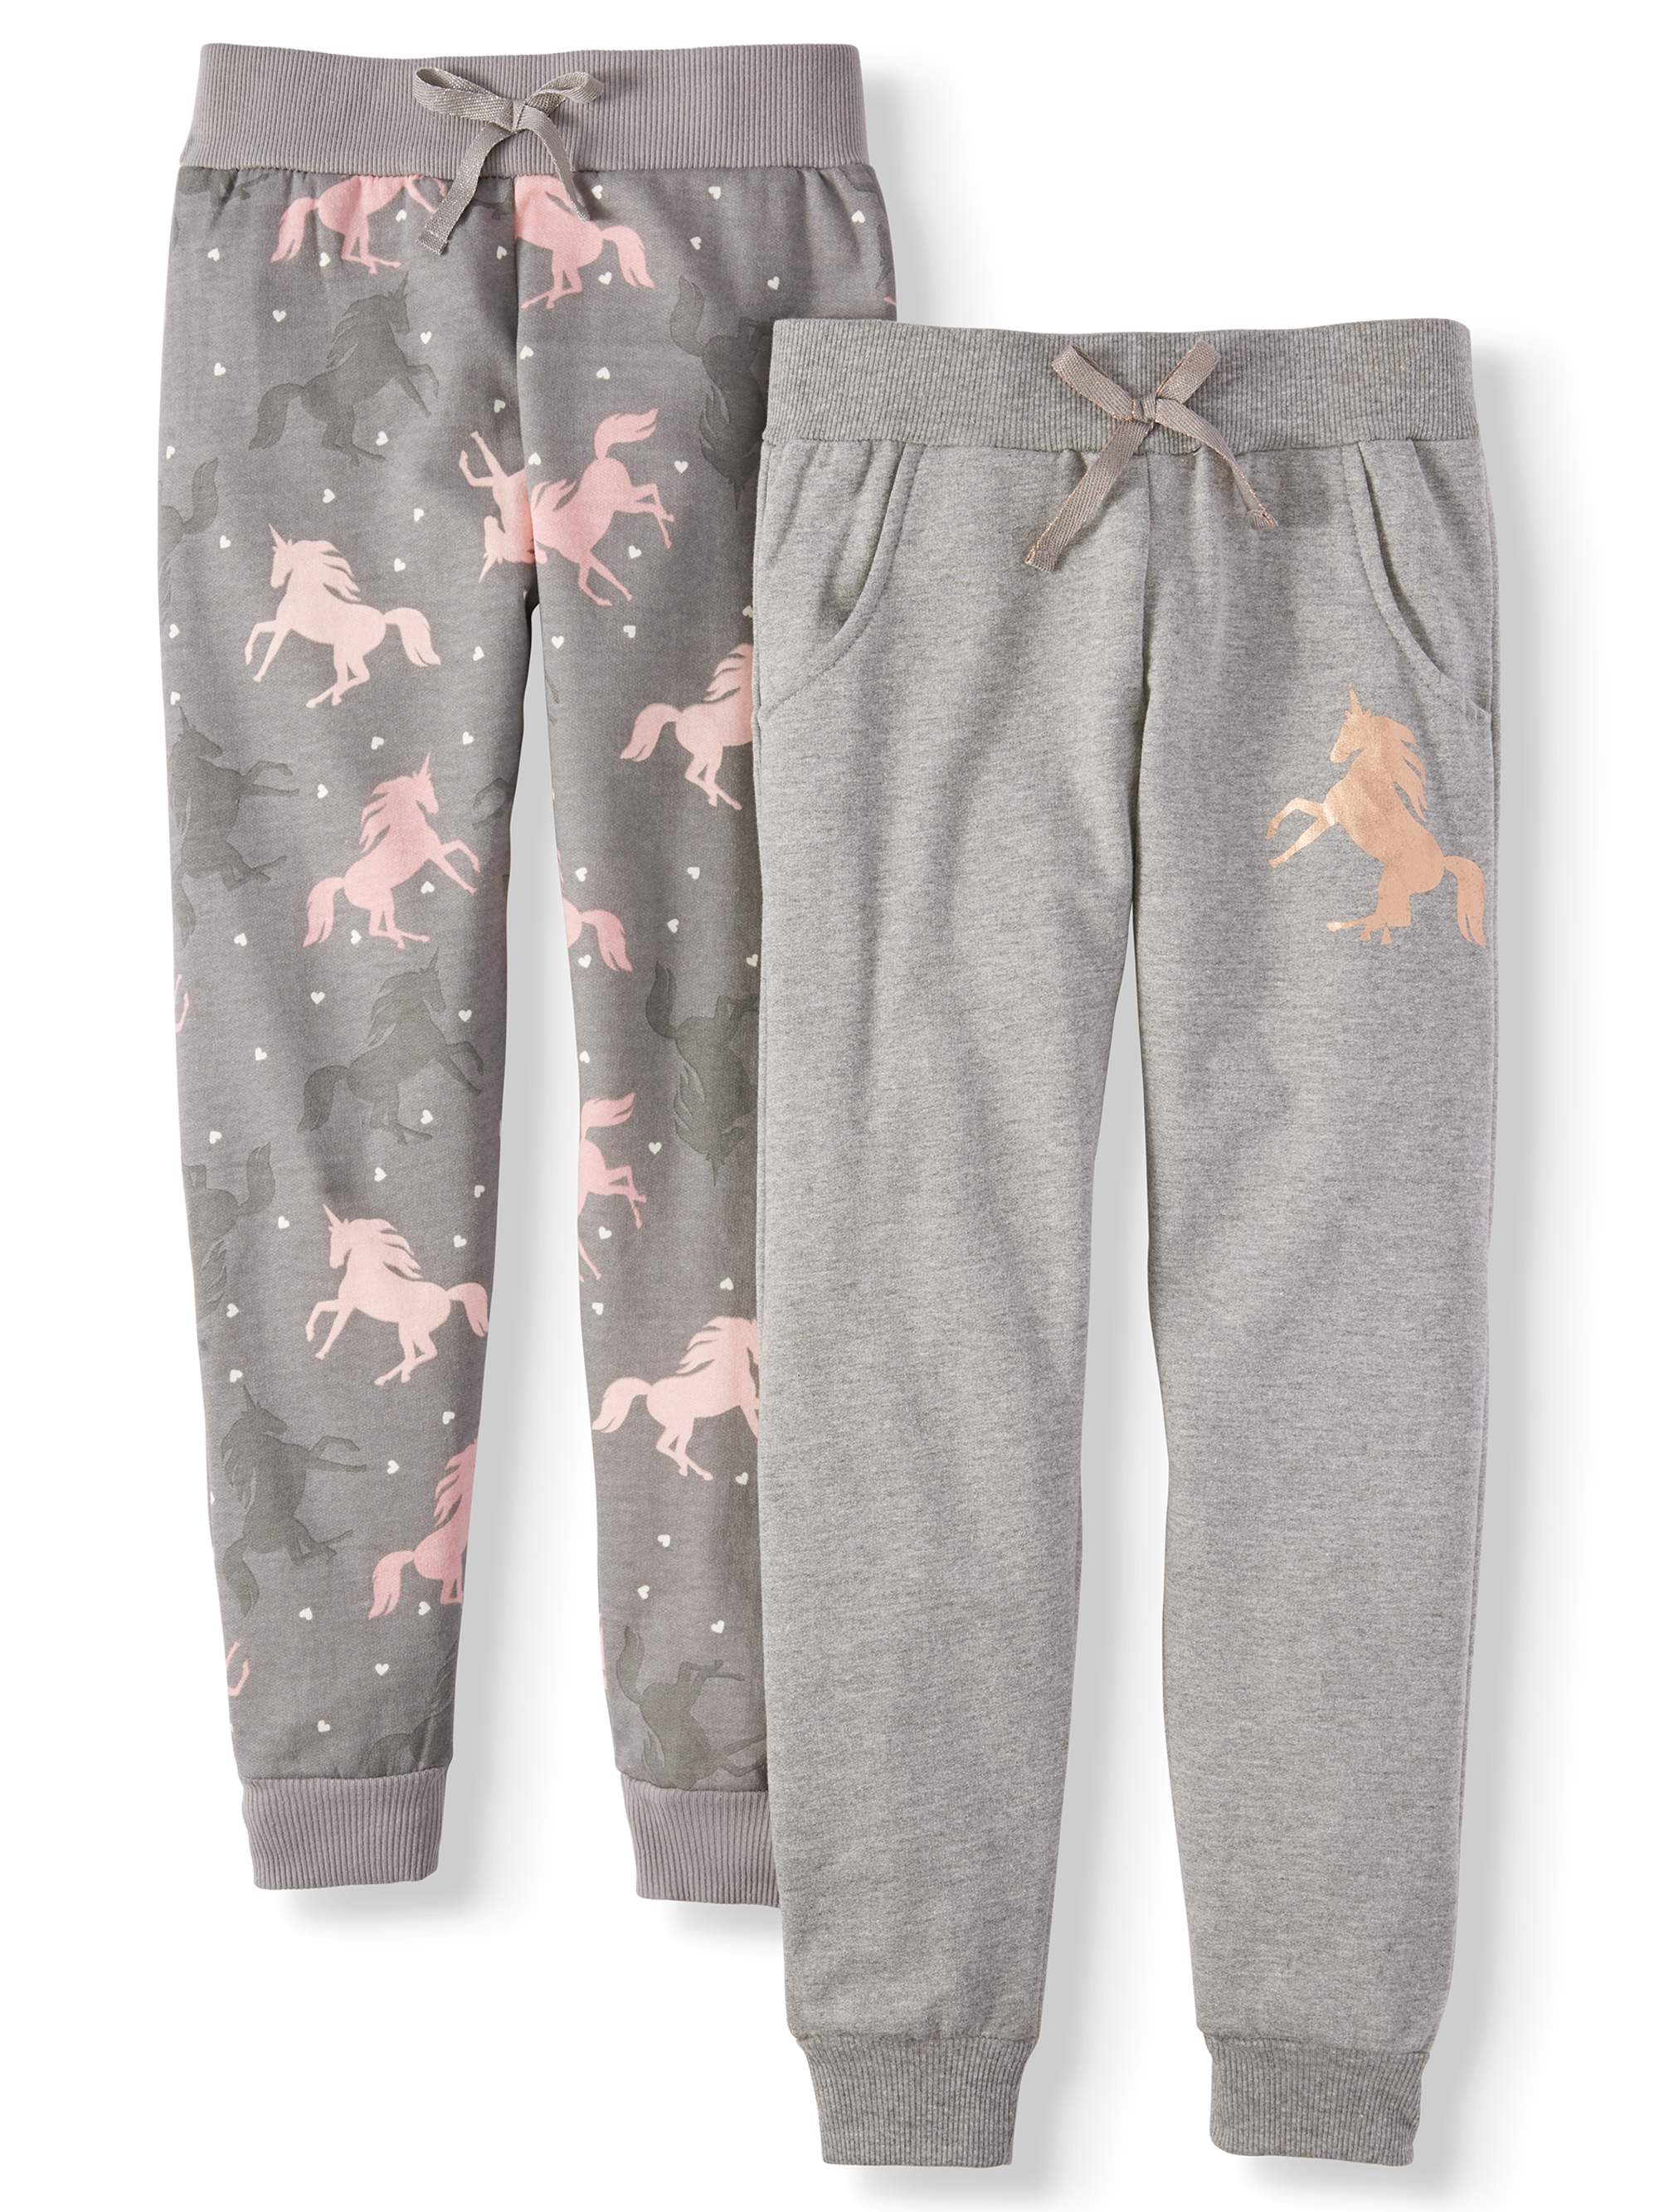 Foil Unicorn and All Over Print Fleece Joggers, 2-Pack (Little Girls & Big Girls)